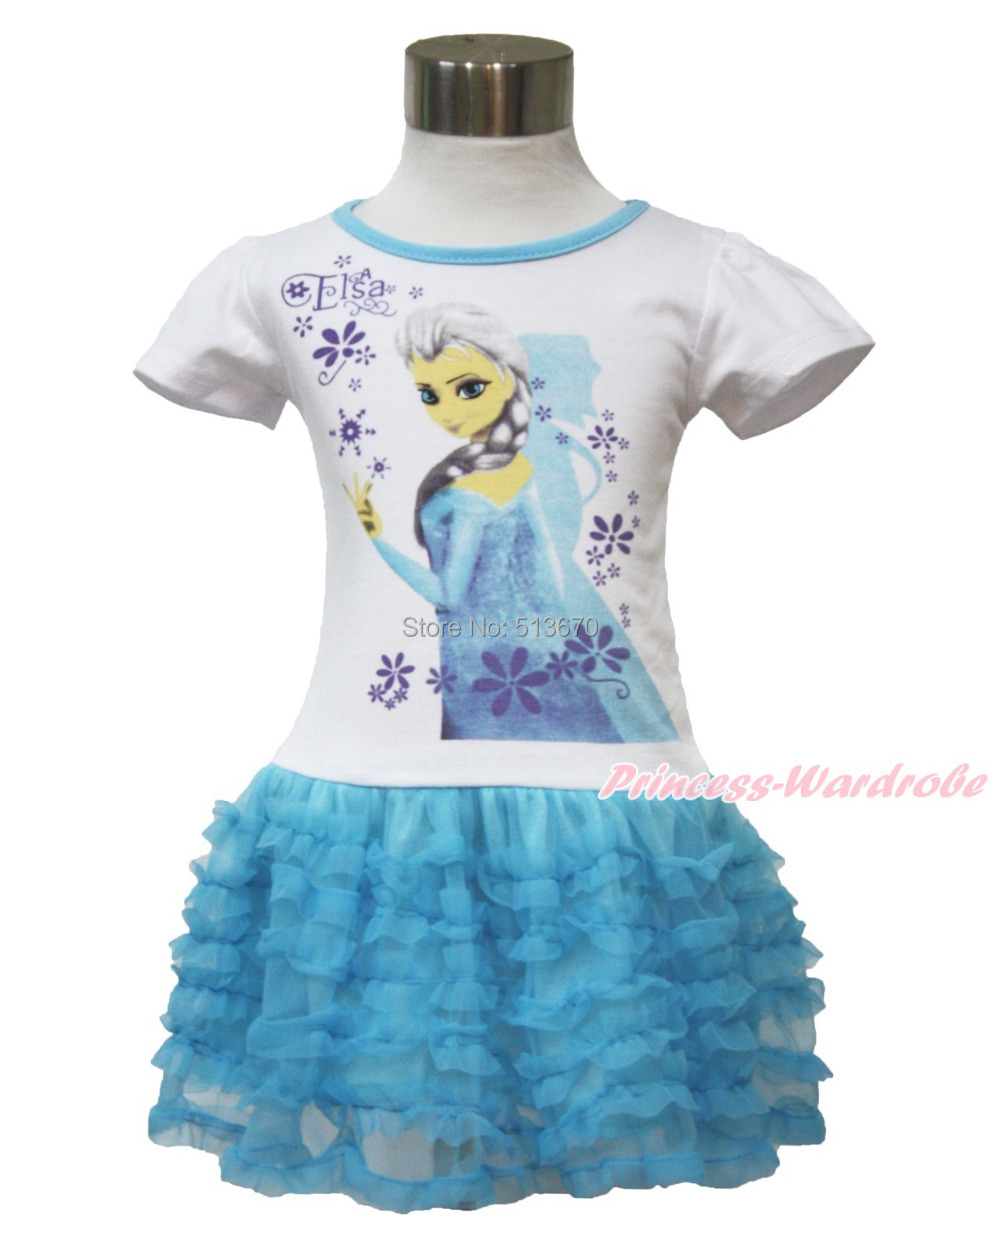 Snow Princess Elsa White Short Sleeves Girl Blue Ruffle One Piece Dress 2-7Year MAC105